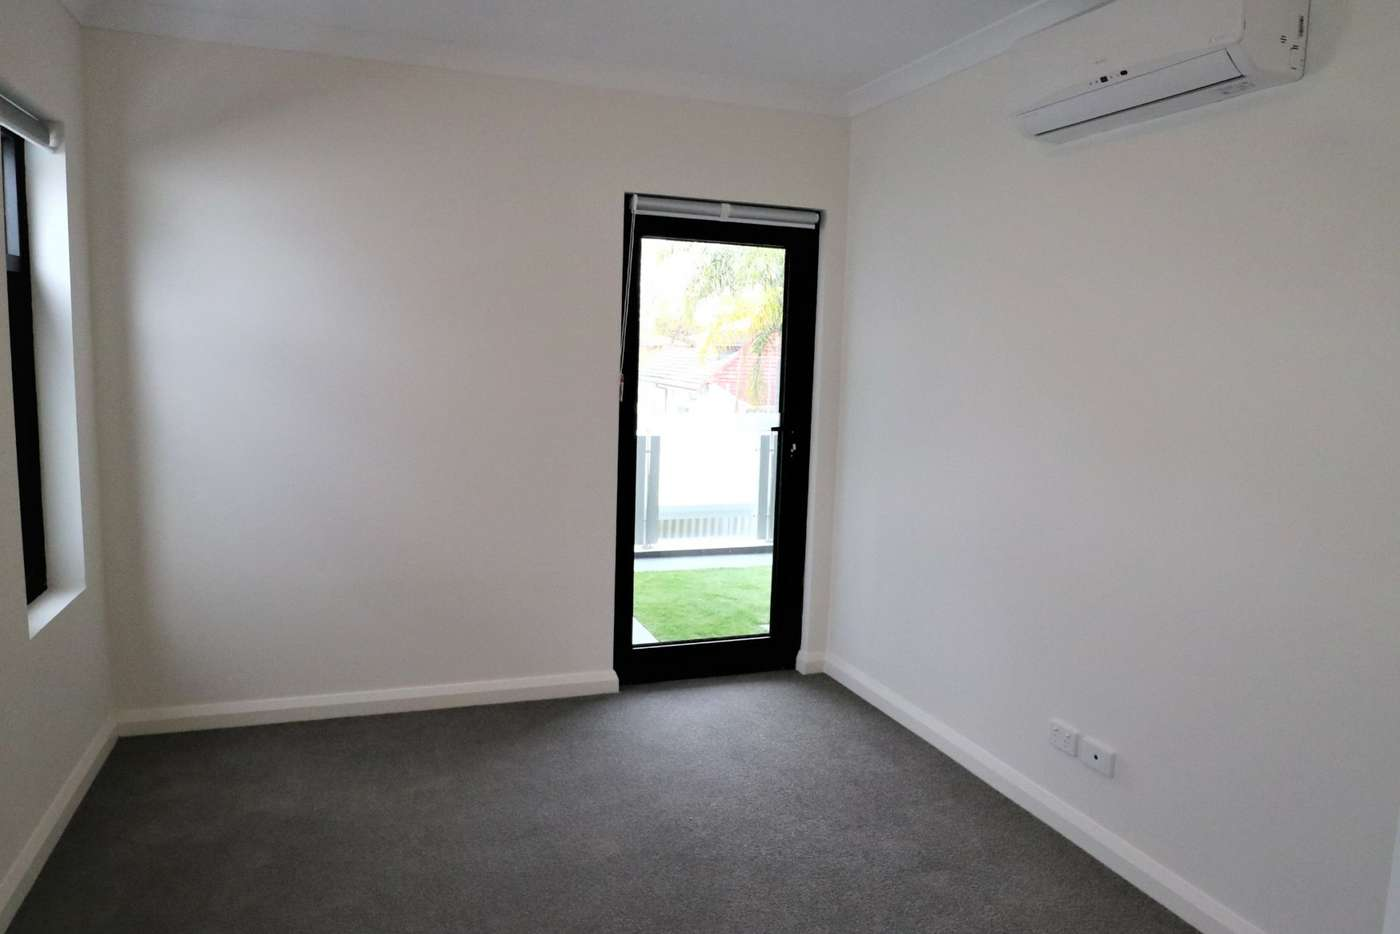 Sixth view of Homely unit listing, 5/10 Ross Street, Kewdale WA 6105